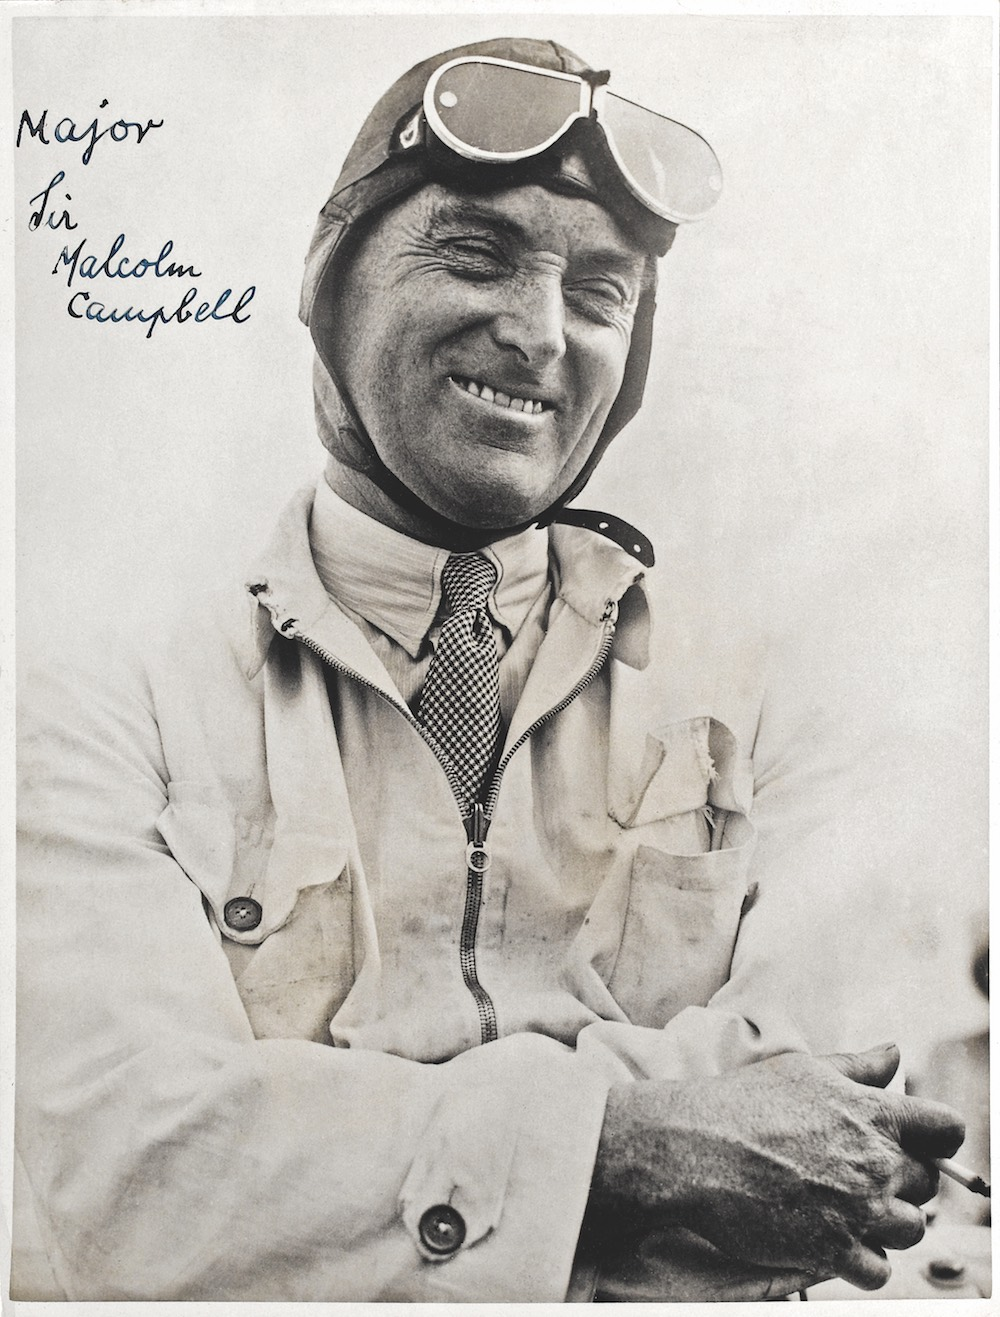 Sir_Malcolm_Campbell